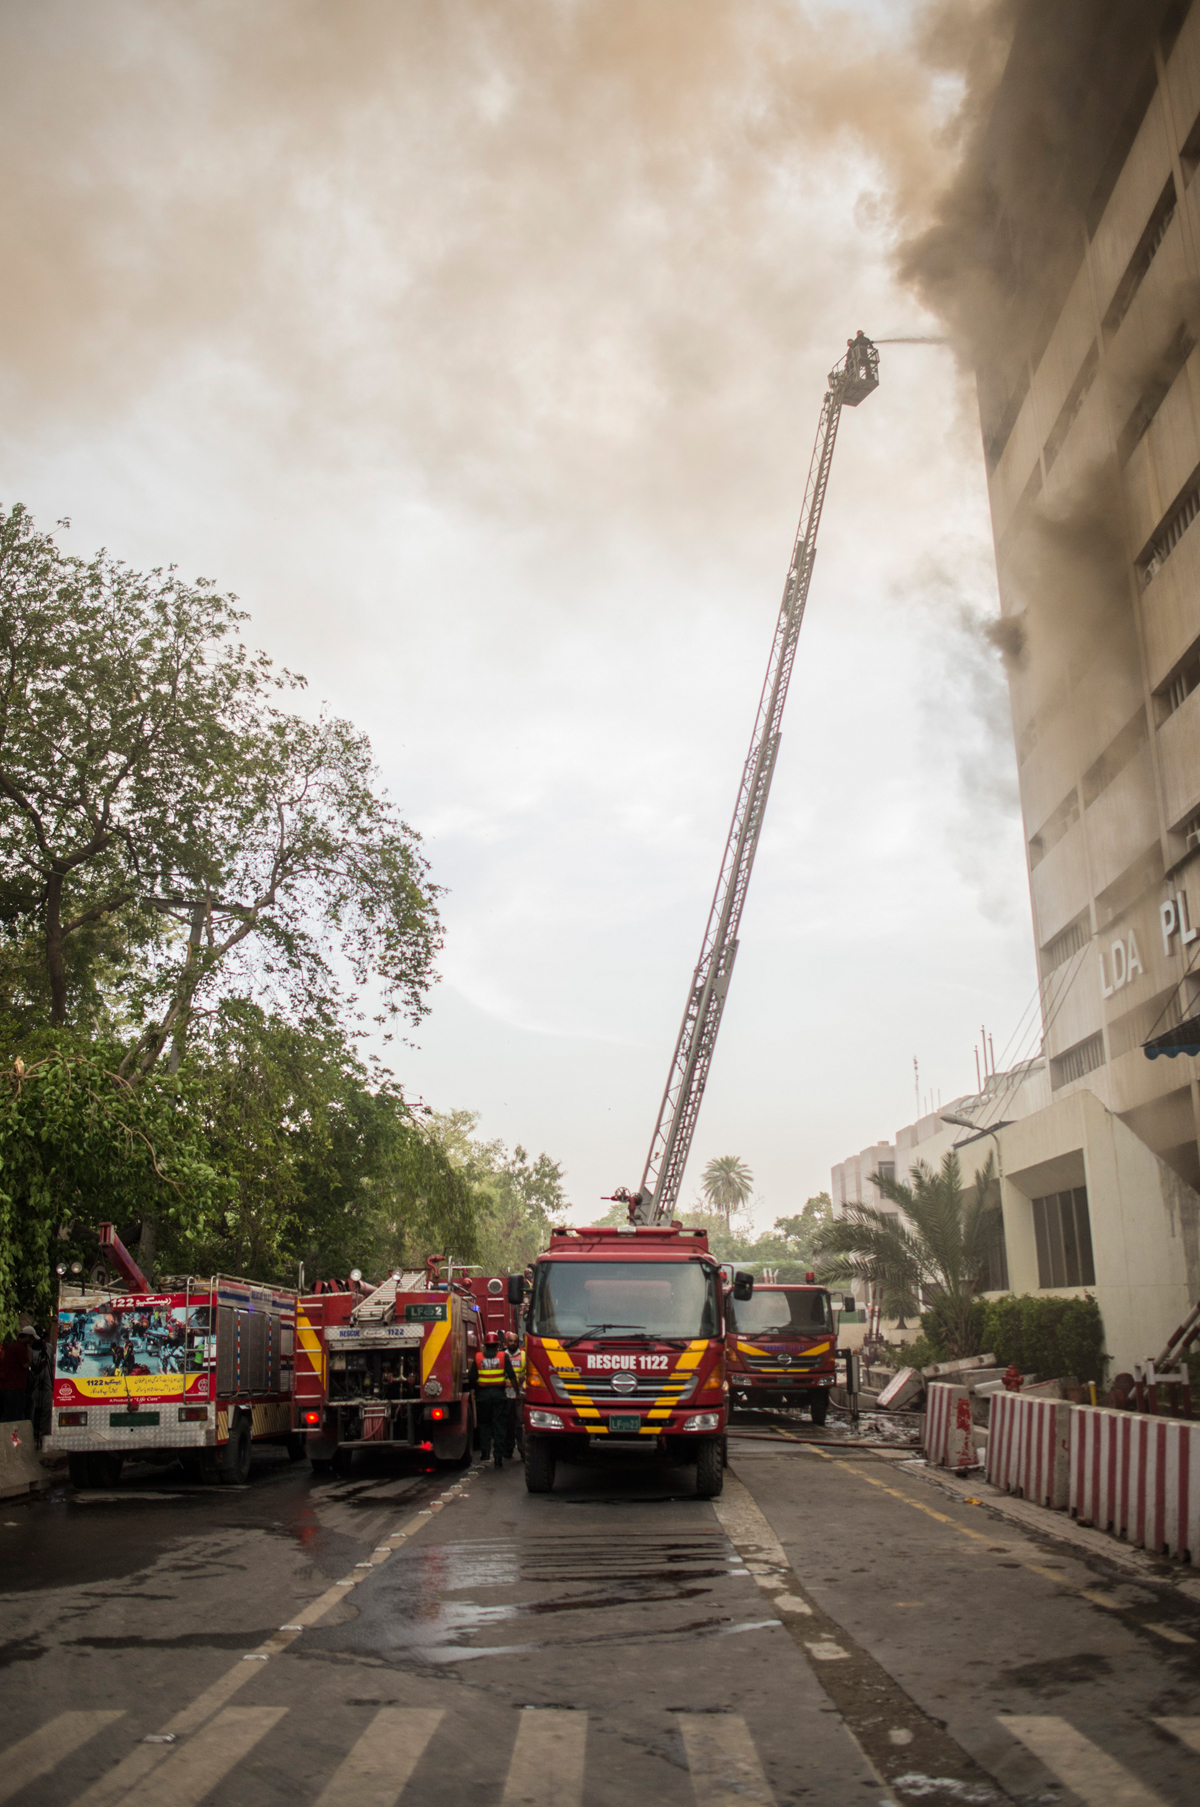 The firebrigade at LDA Plaza | saad Sarfaraz